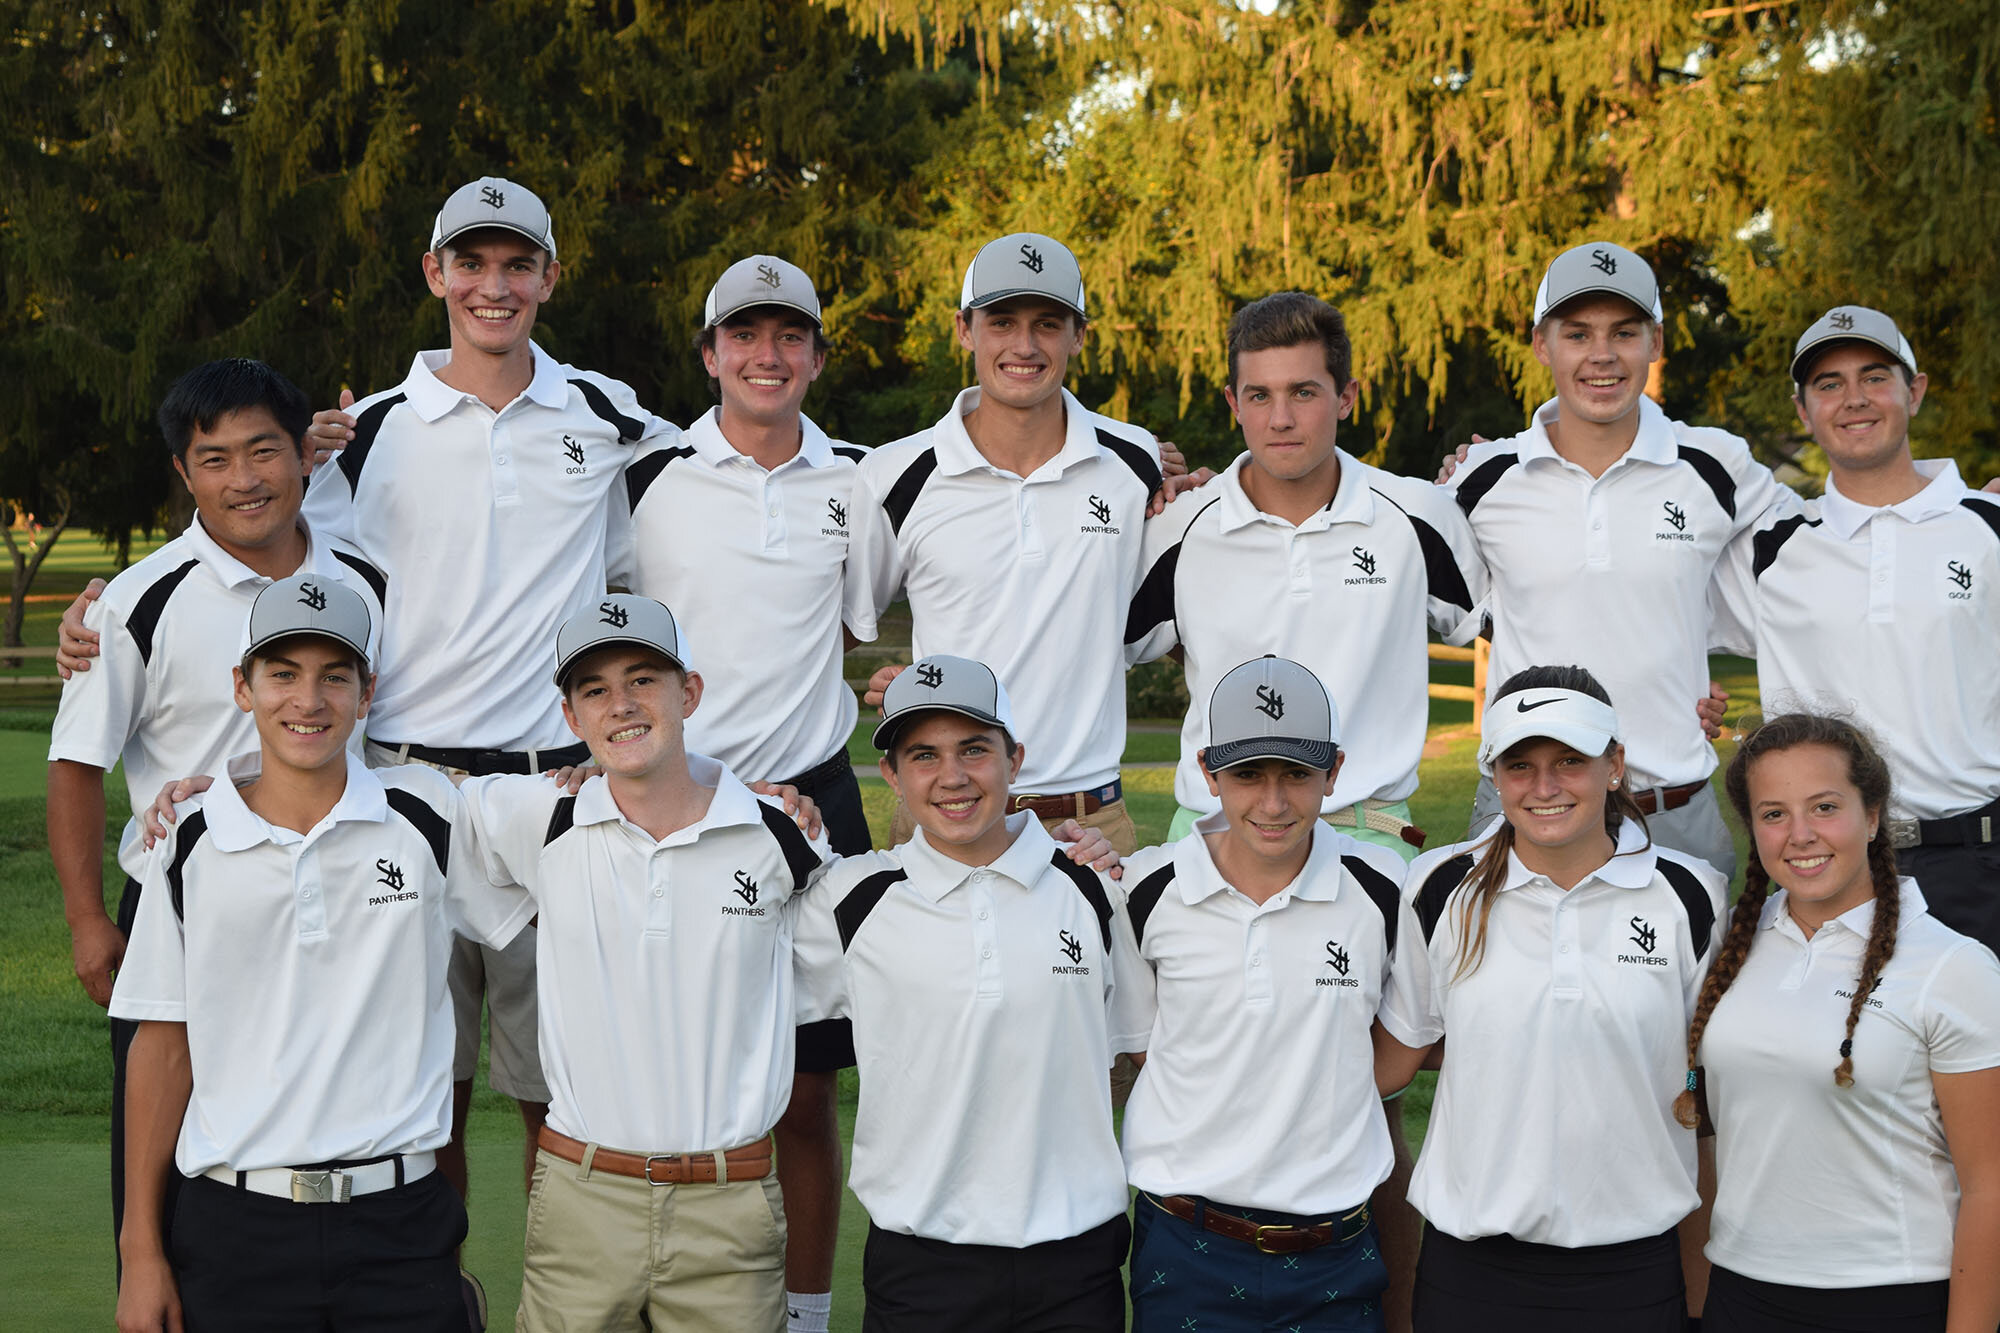 Strath Haven High School's undefeated golf team includes (top, l. to r.): Coach Kevin Kochersperger, David Merz, Nick Cardow, Kevin Smith, Alex Lombard, Thomas Sullivan, Jackson Debusschere; (bottom, l. to r.): Jackson Voshell, Colin Beucler, Tyler Debusschere, Jake Malarkey, Grace Smith, and Paige Brown.